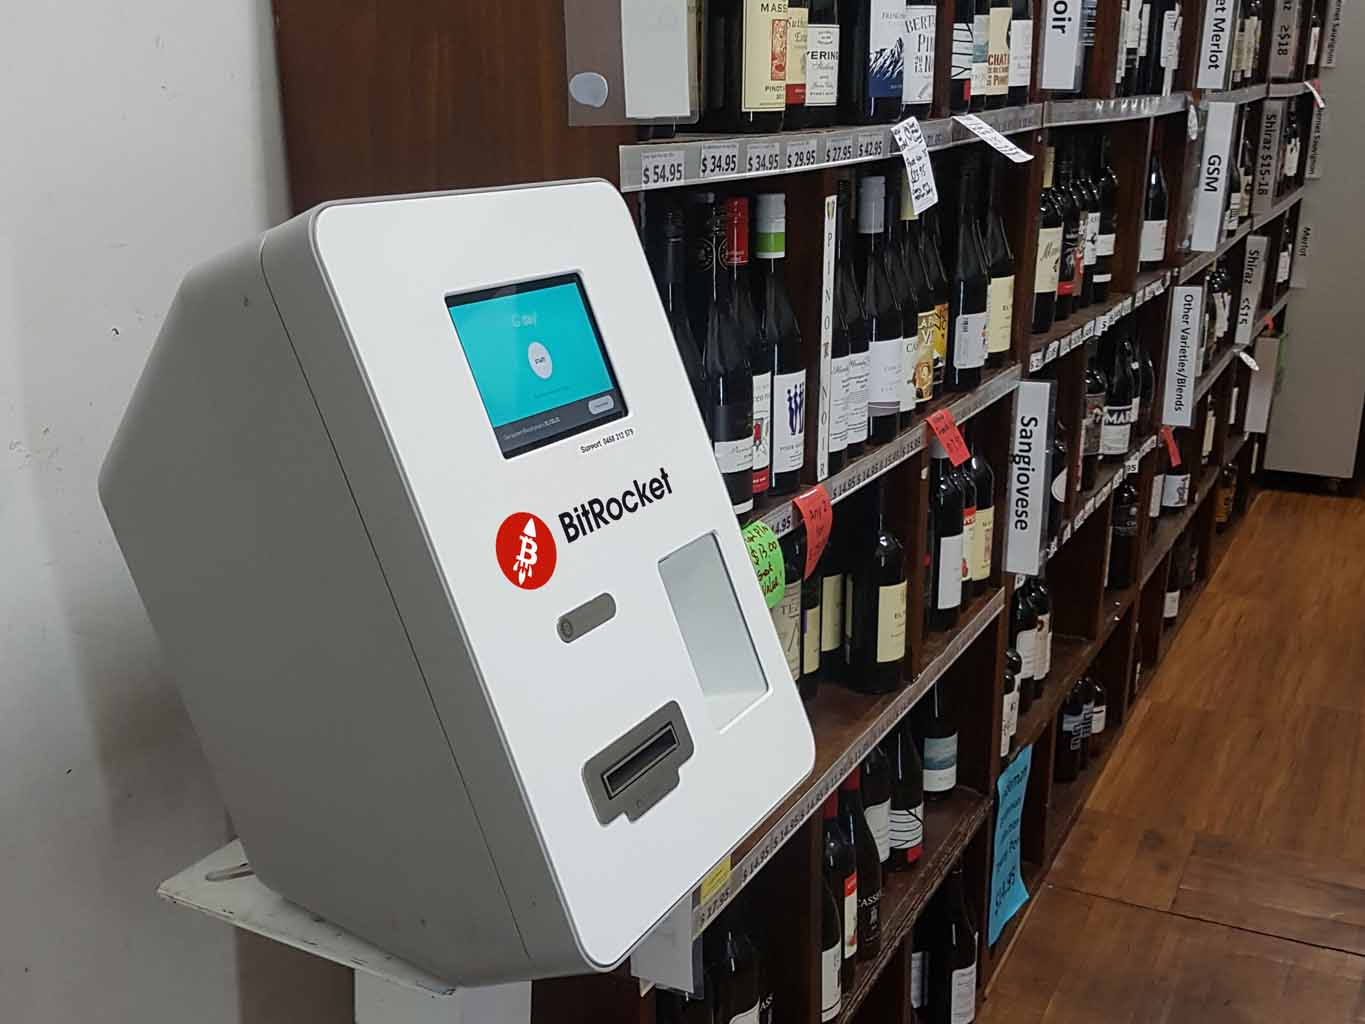 BitRocket Bitcoin ATM Macaulay Rd Cleanskins Wine Melbourne Buy Bitcoin ATM